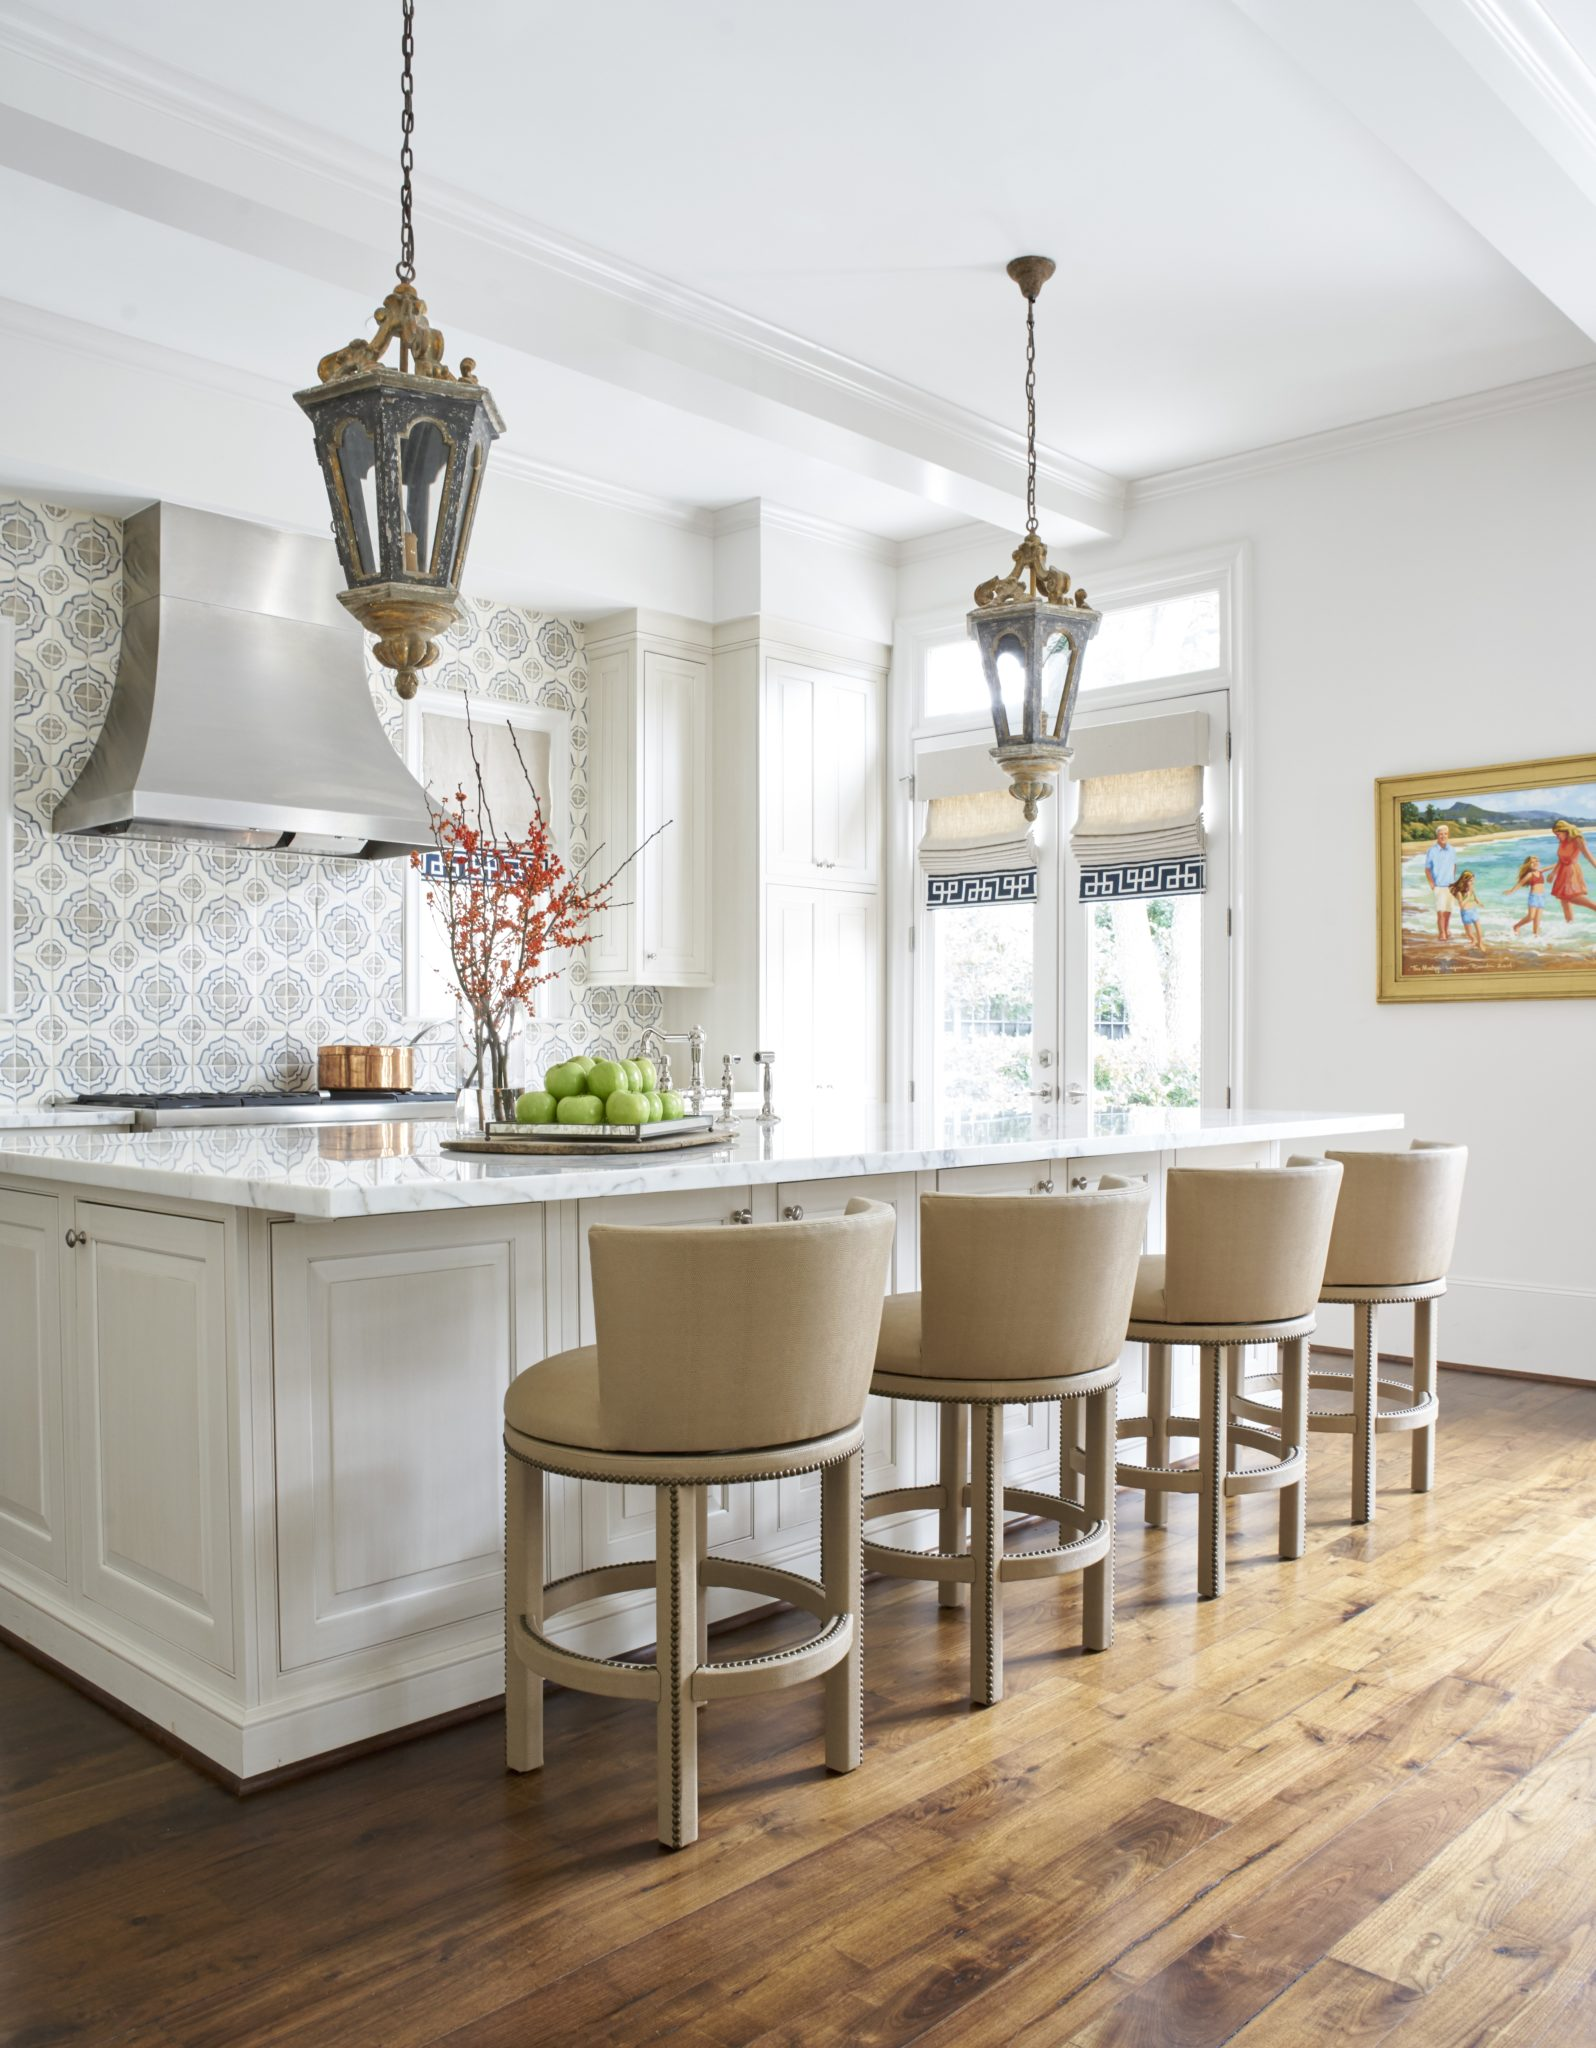 Tangle Lane Kitchen by Dodson Interiors